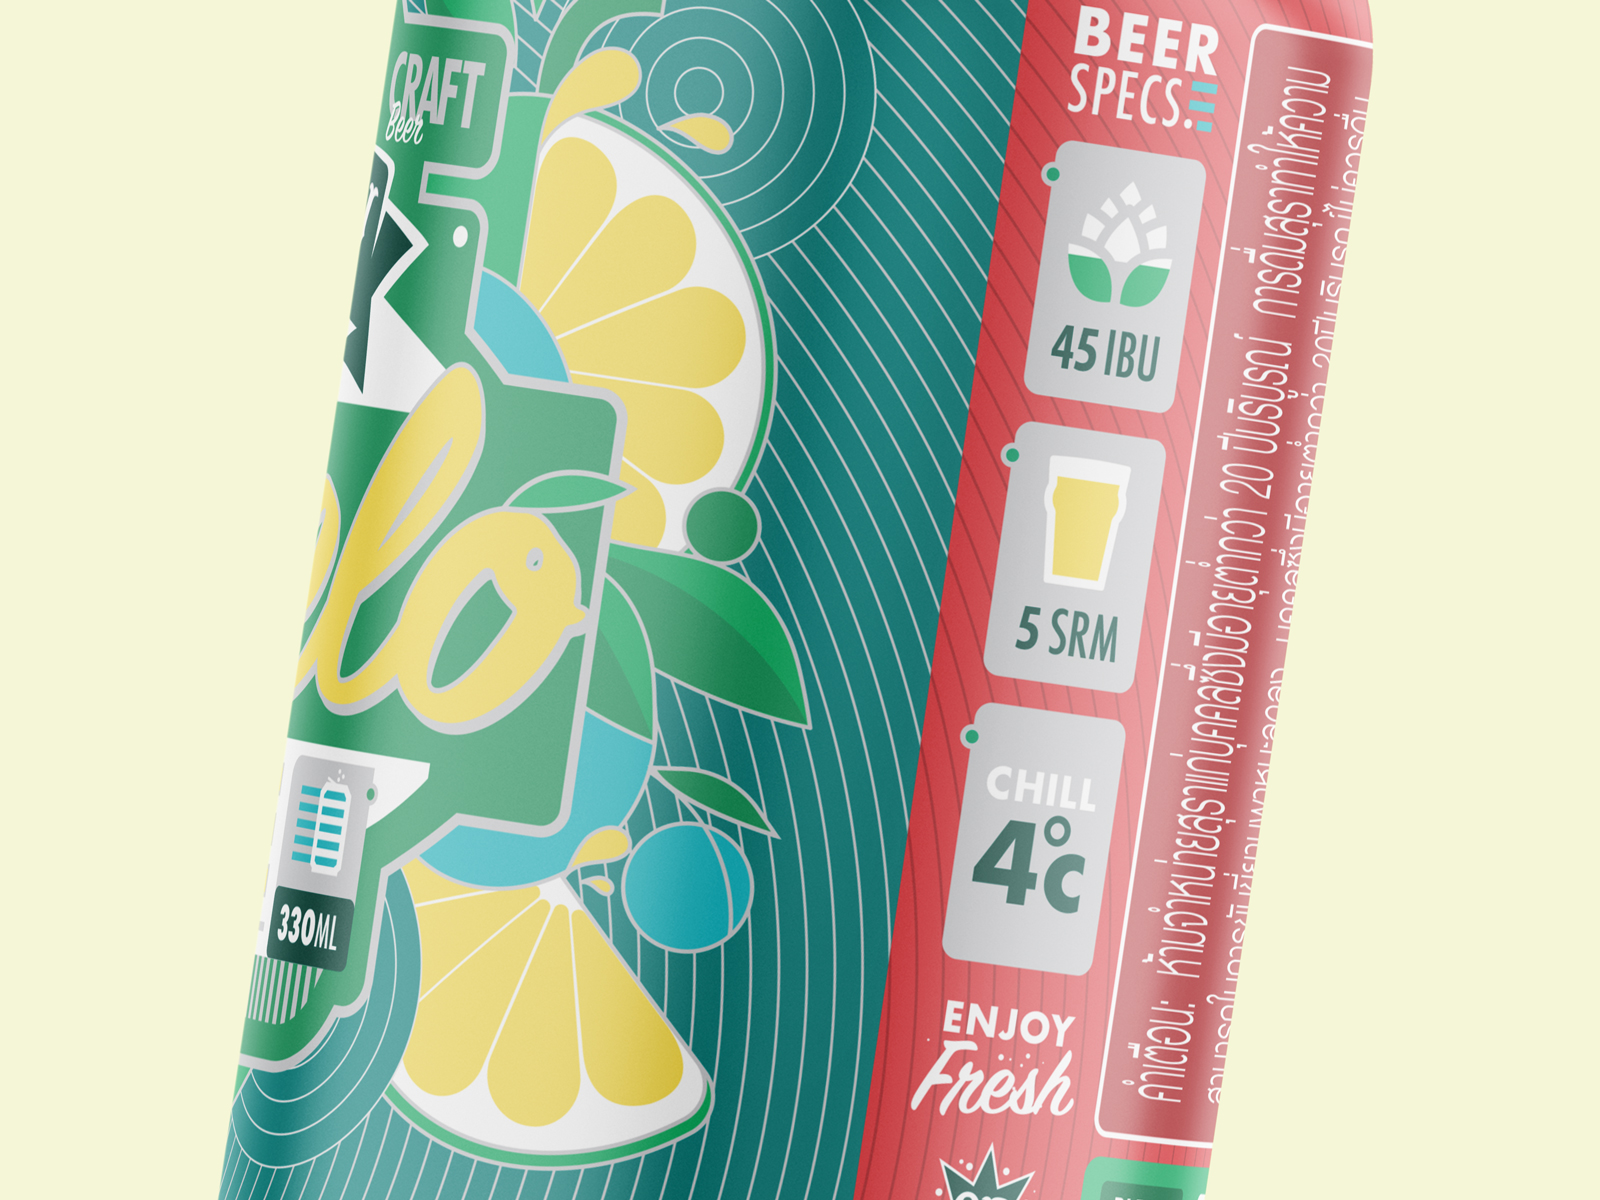 pomelo pale ale beer can label design for outlaw brewing